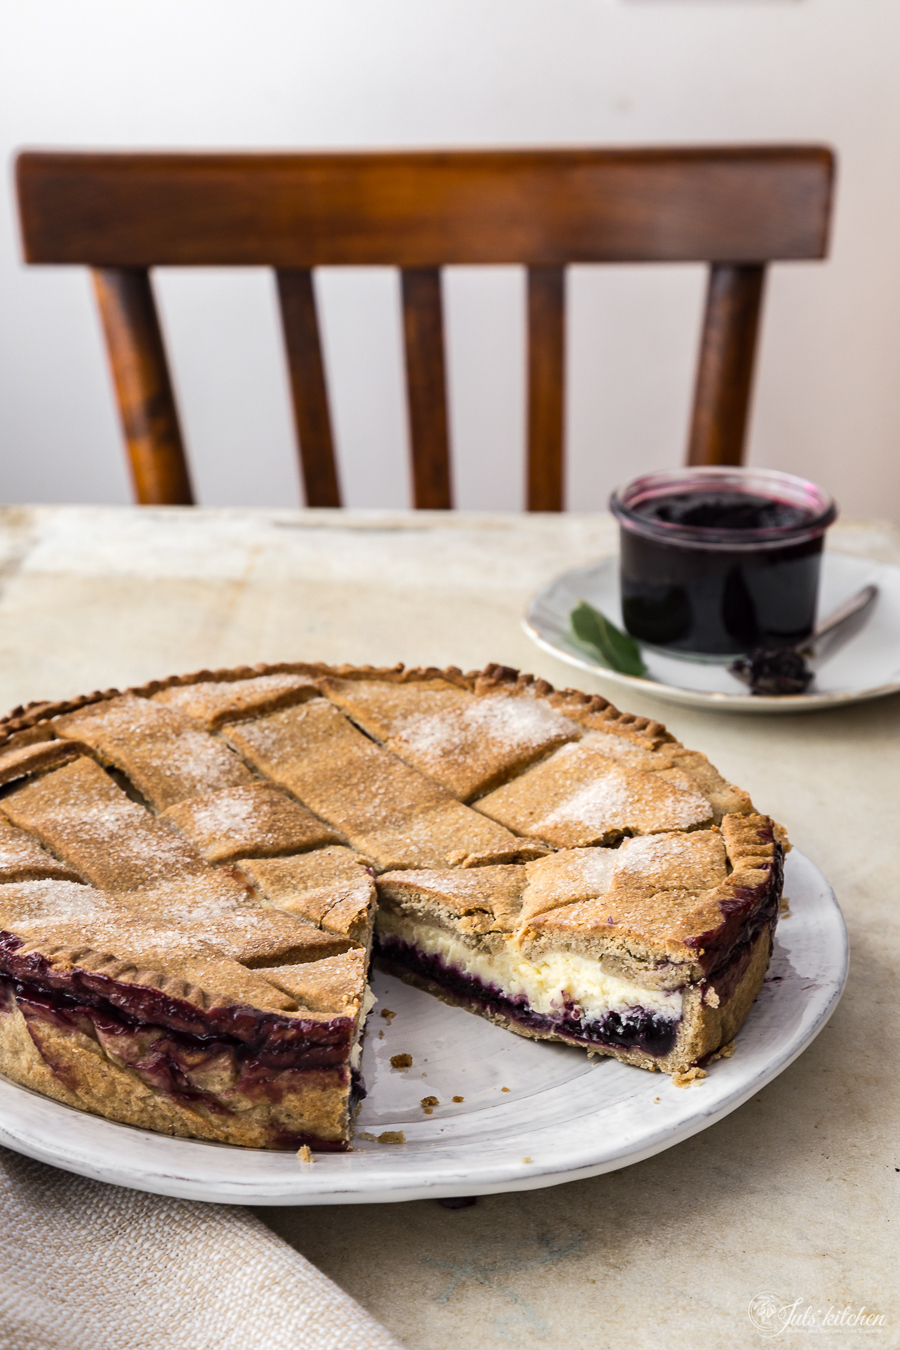 Blueberry jam and ricotta crostata from the Tuscan Appennini